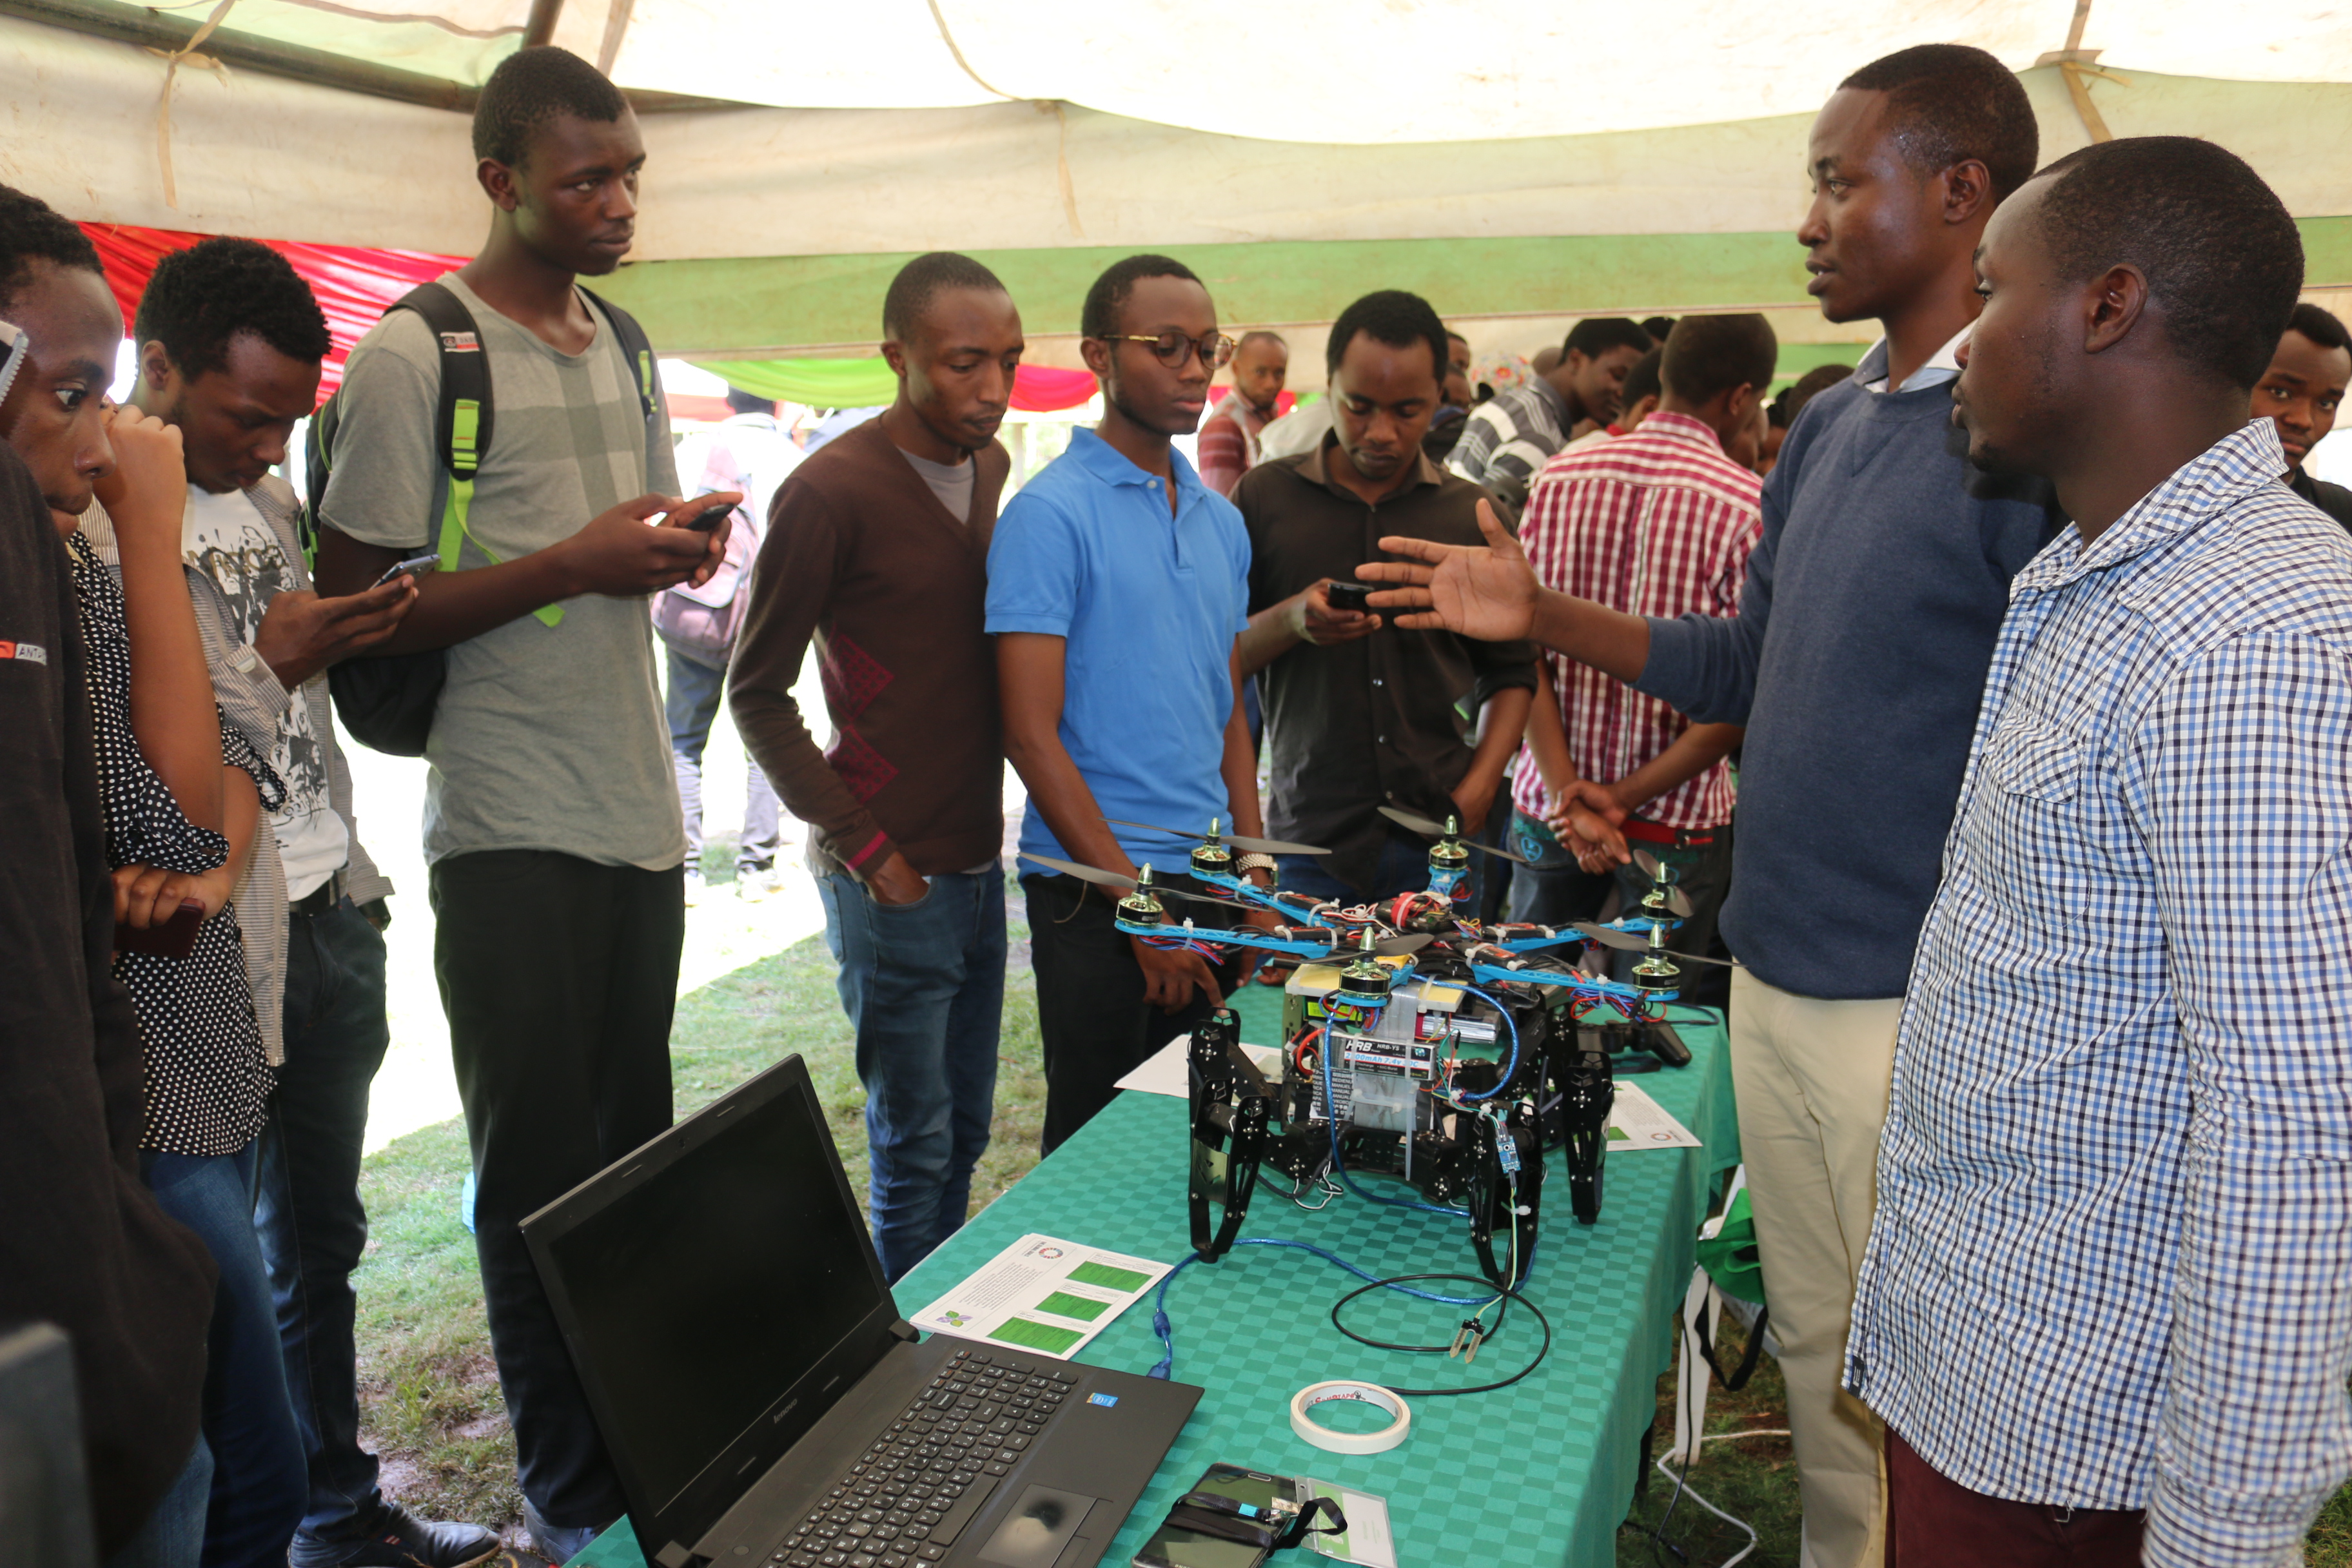 Charles explains his innovation to attendees at the Expo last year.